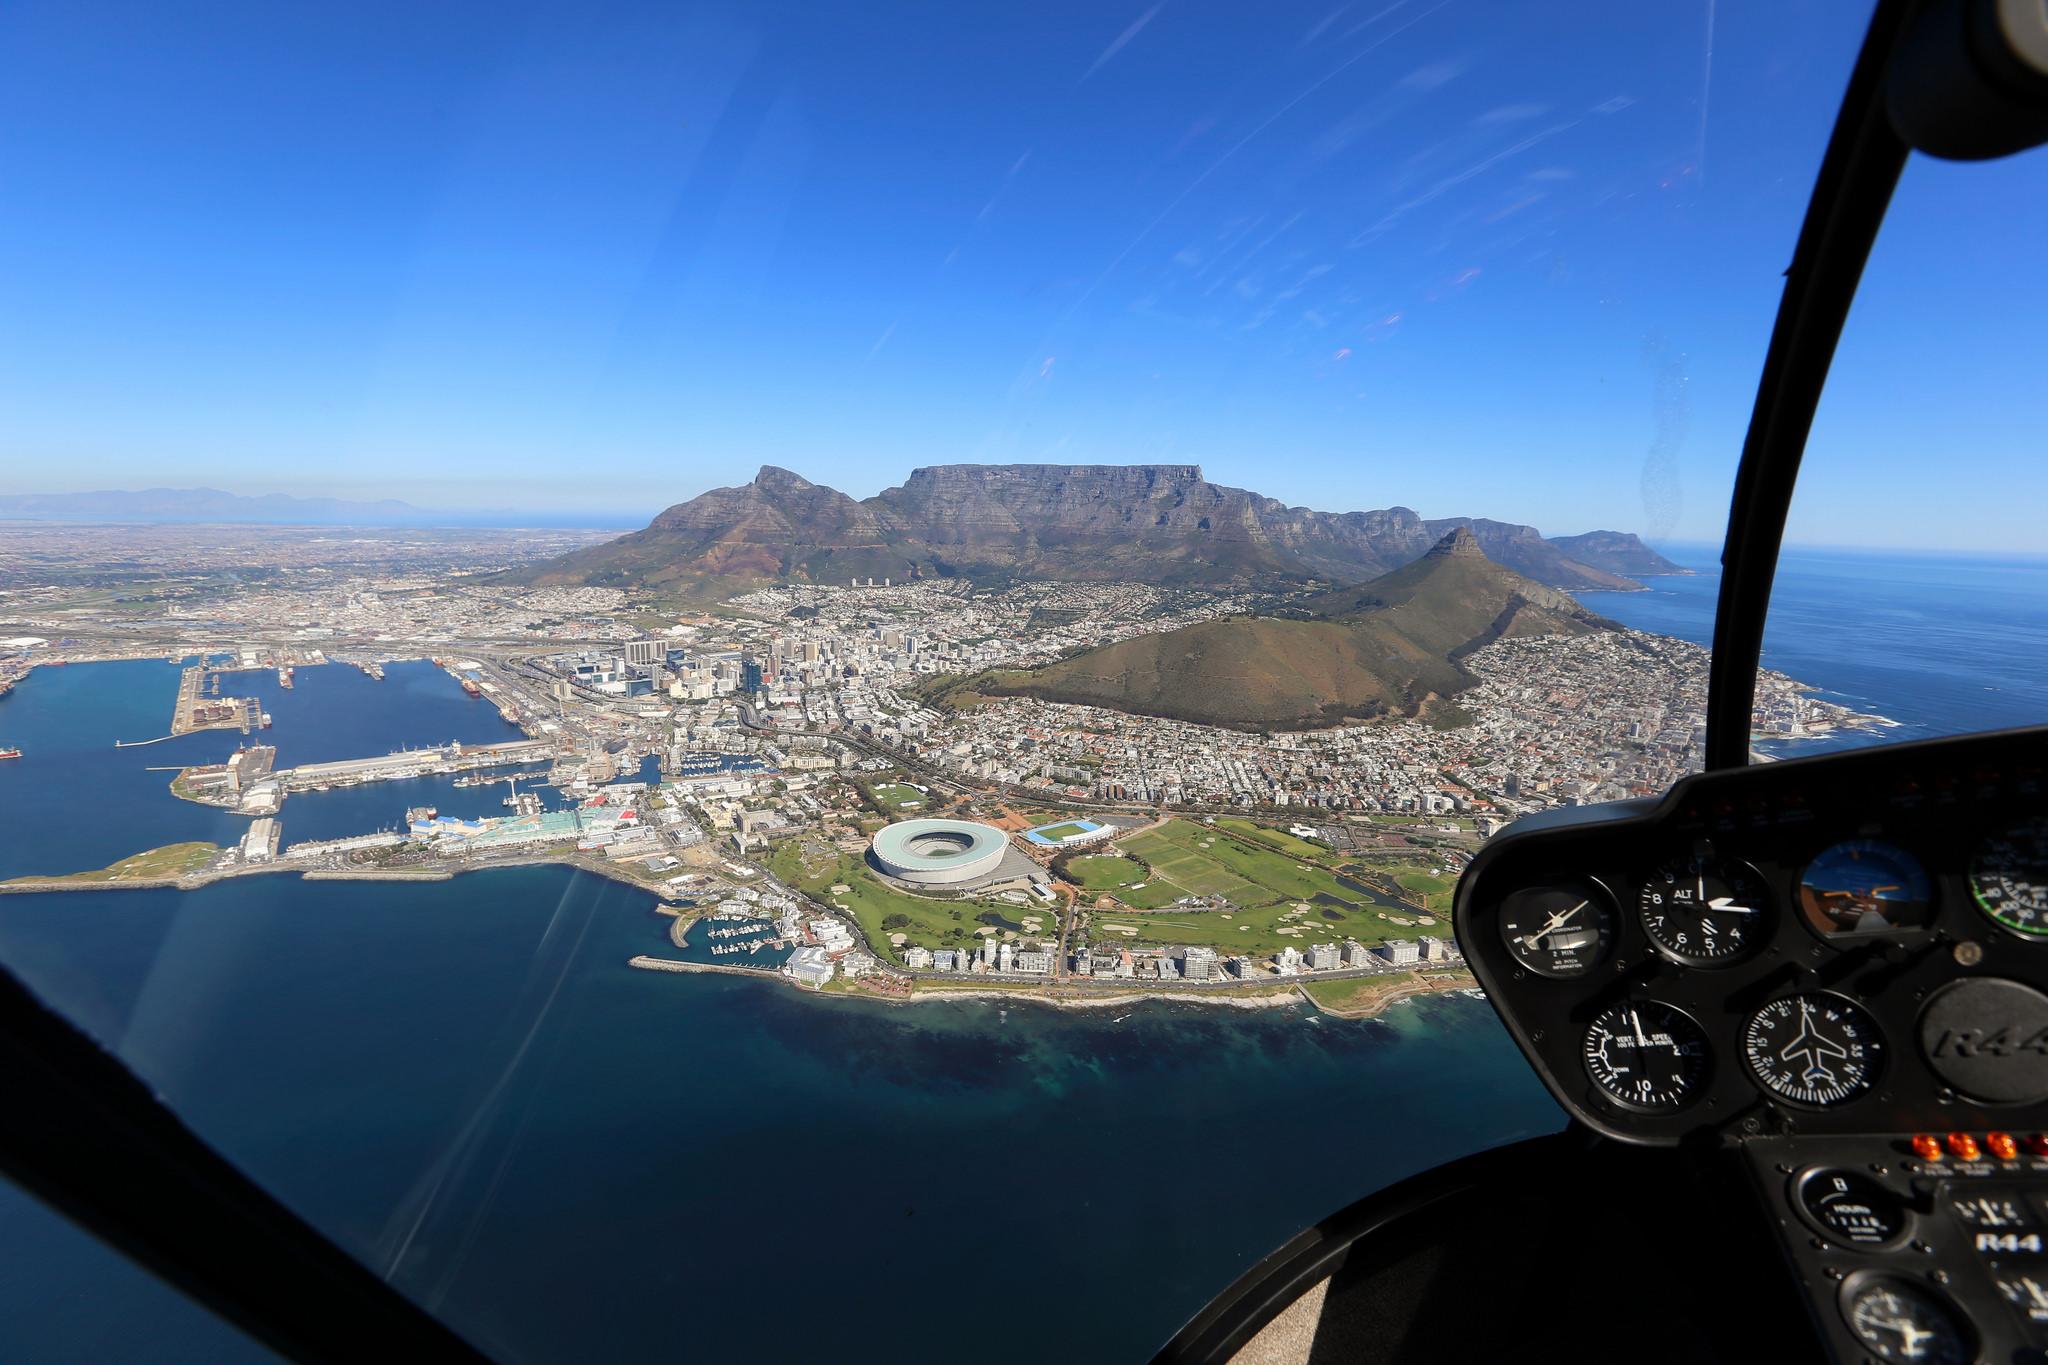 View of Cape Town from helicopter.